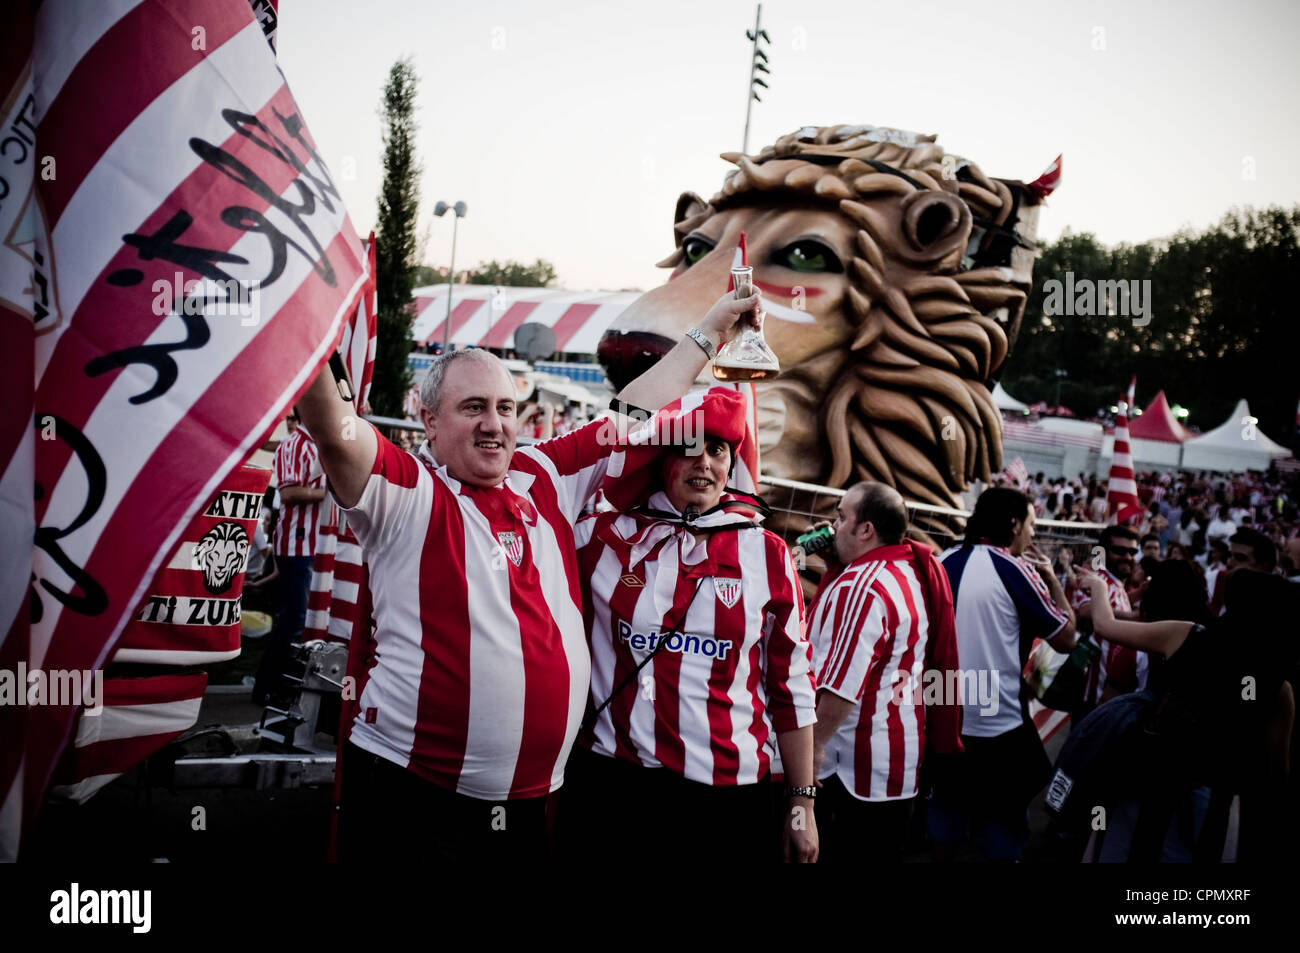 Athletic Bilbao fans in Madrid before Copa del Rey 2012 Final against FC Barcelona. - Stock Image